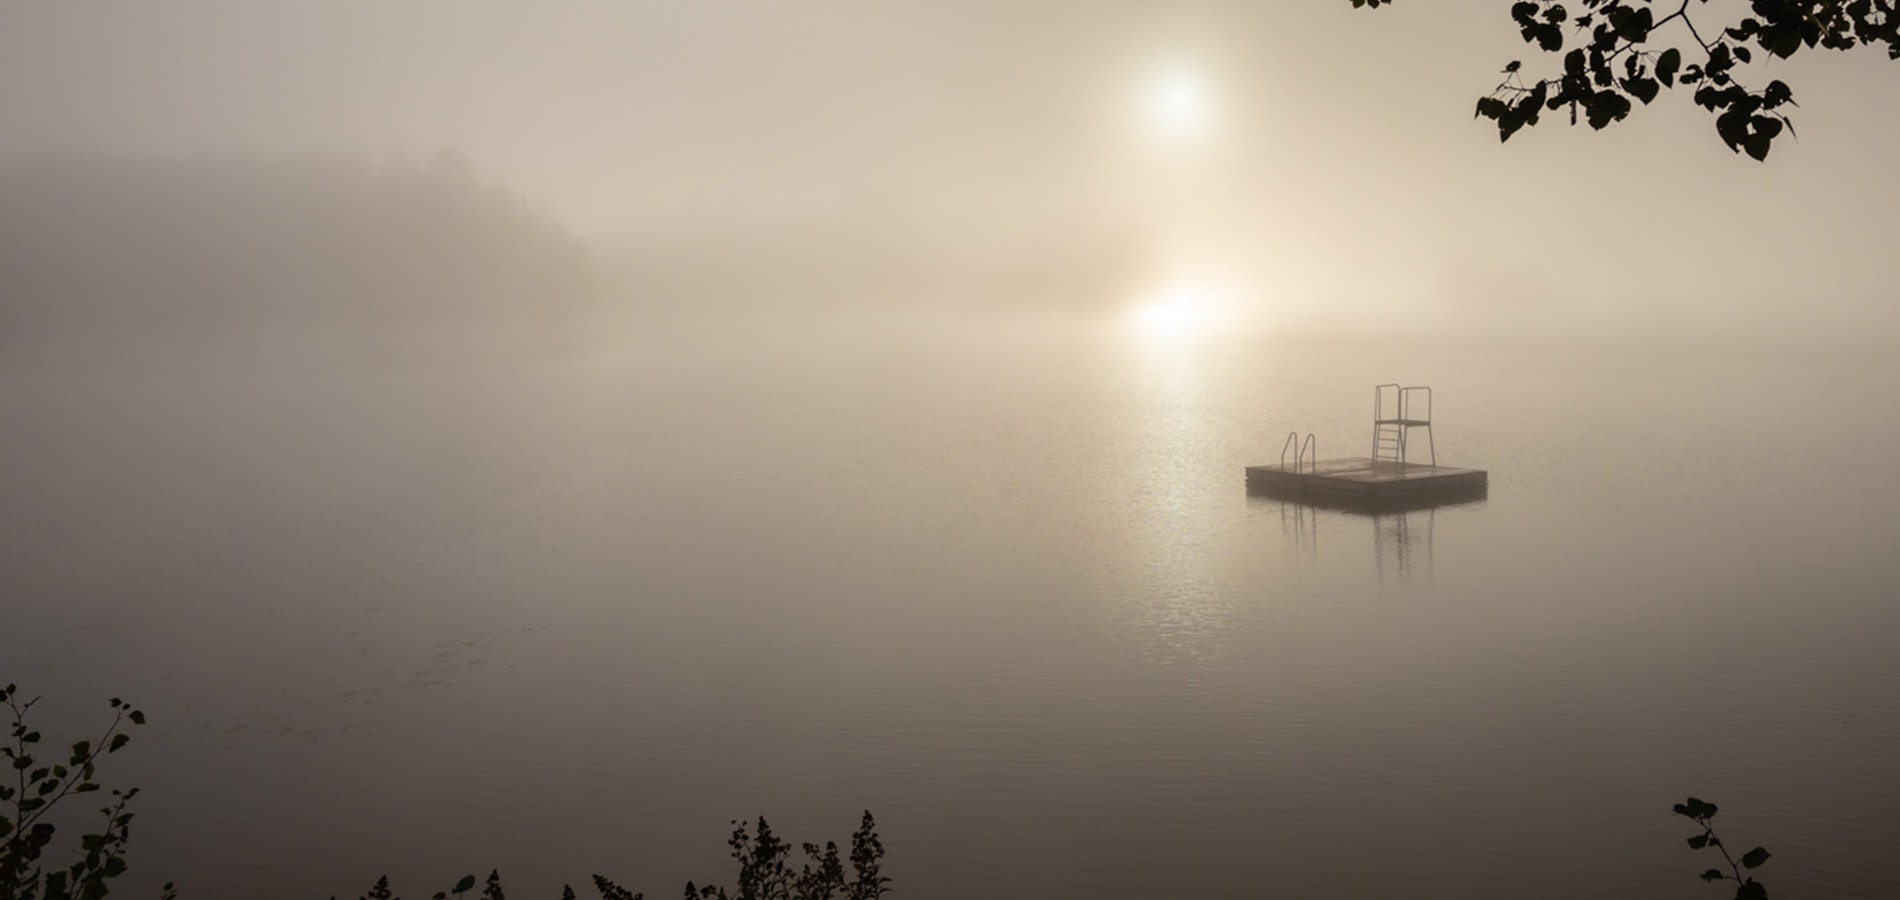 lake covered in early morning mist at sunrise by katja photography